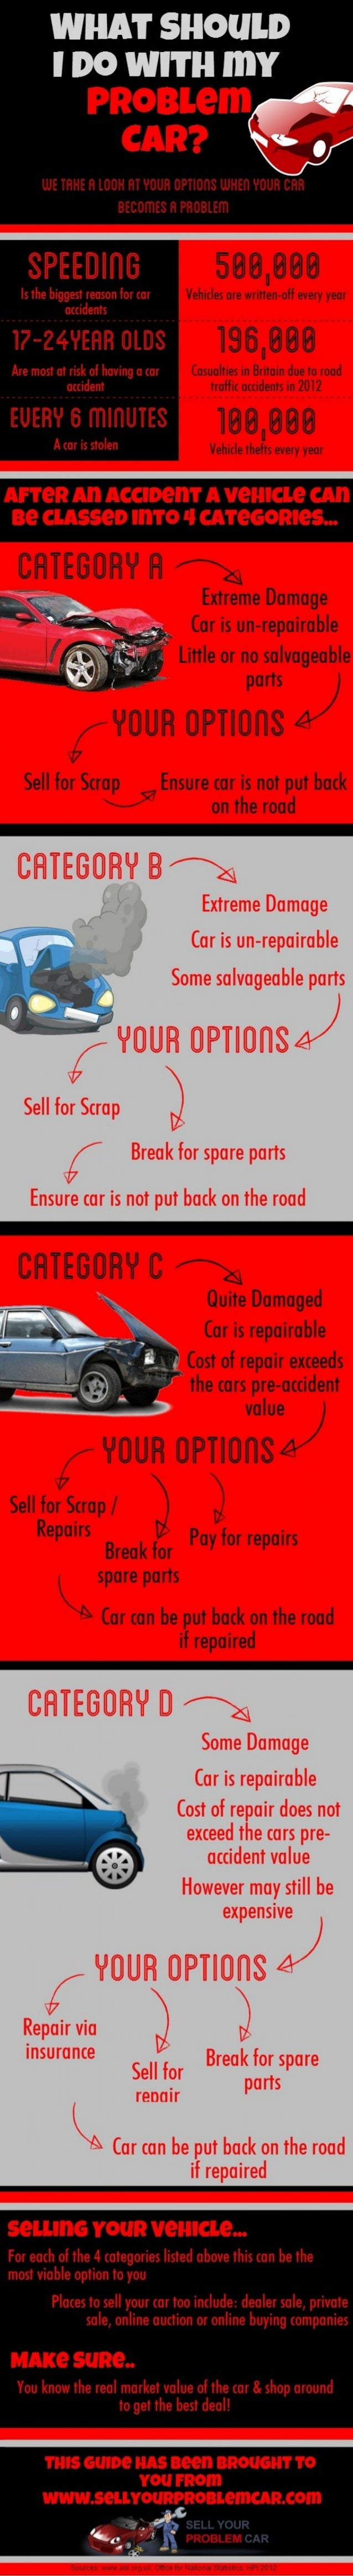 4 Ways To Sell Your Faulty Car